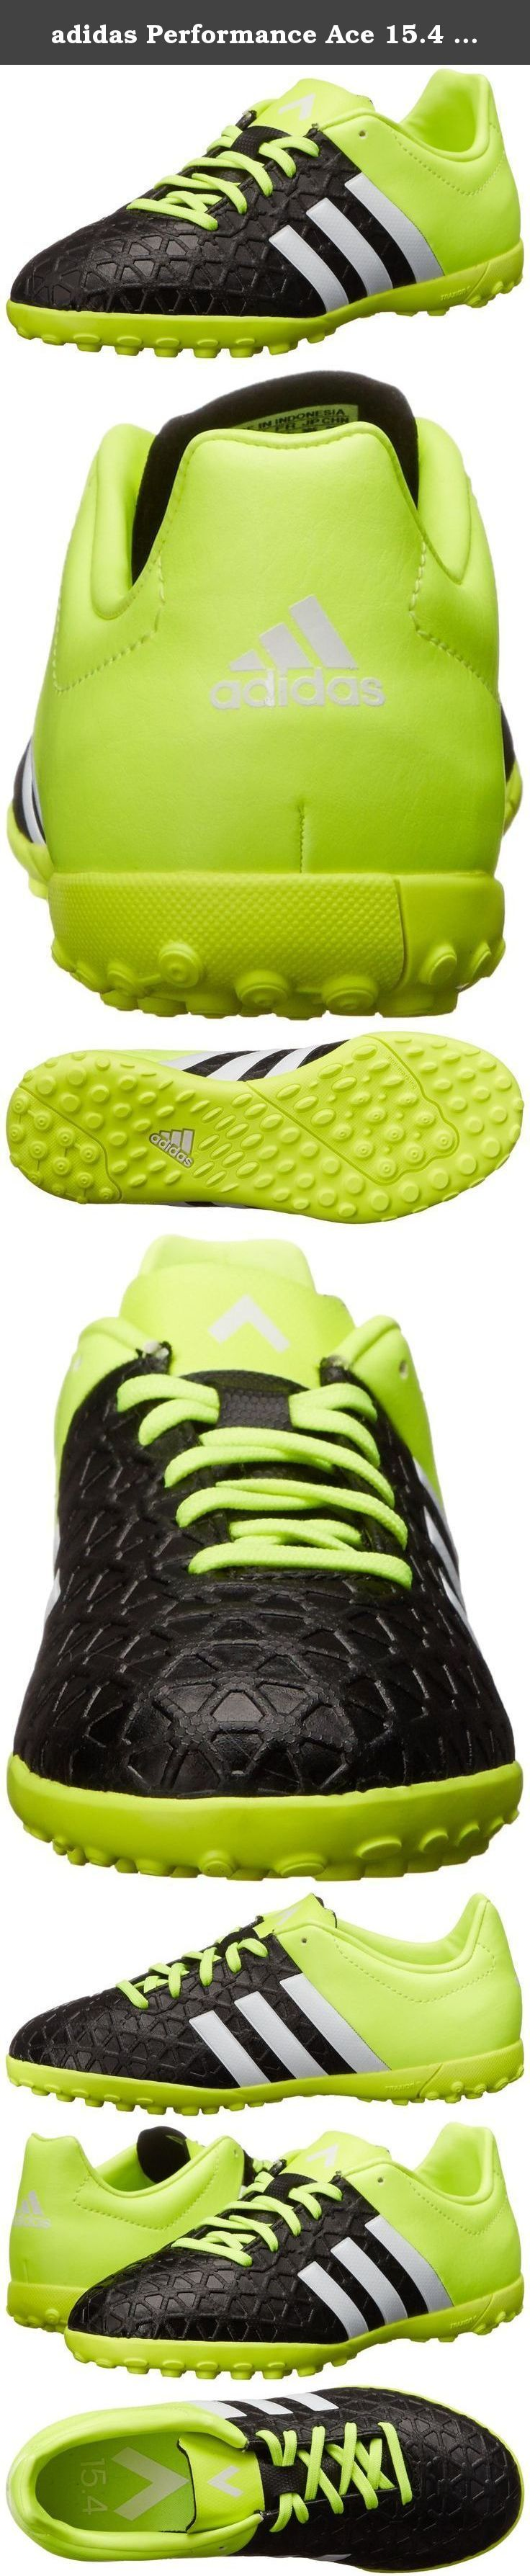 adidas Performance Ace 15.4 Turf J Soccer Shoe (Little Kid/Big Kid), Black/White/Solar Yellow, 3 M US Little Kid. Back your team every game with the Ace Entry TF soccer boot from adidas®!.